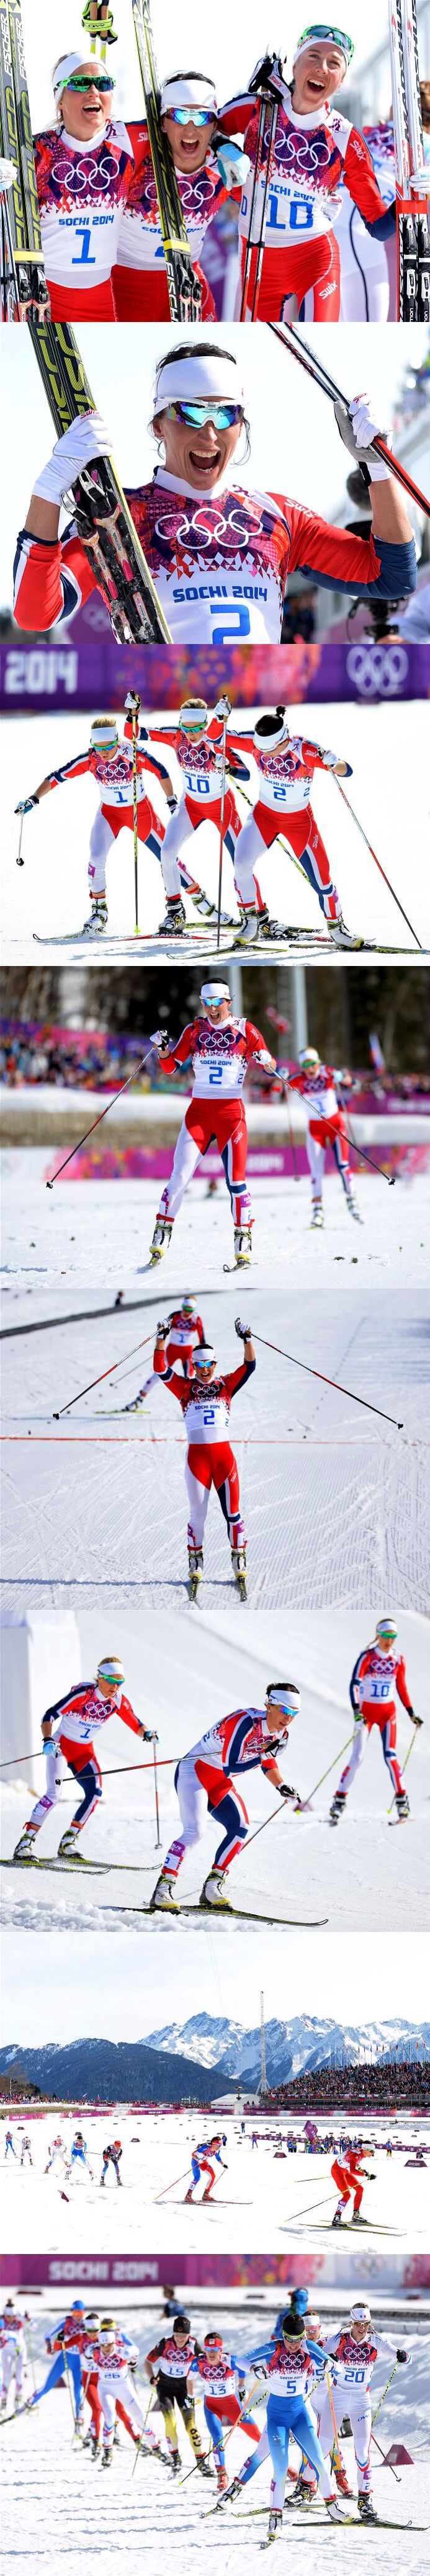 Sochi 2014 Day 16 /Cross Country Ladies' 30 km Mass Start Free, (L-R) Silver medalist Therese Johaug of Norway, gold medalist Marit Bjoergen of Norway and bronze medalist Kristin Stoermer Steira of Norway celebrate after the Women's 30 km Mass Start Free